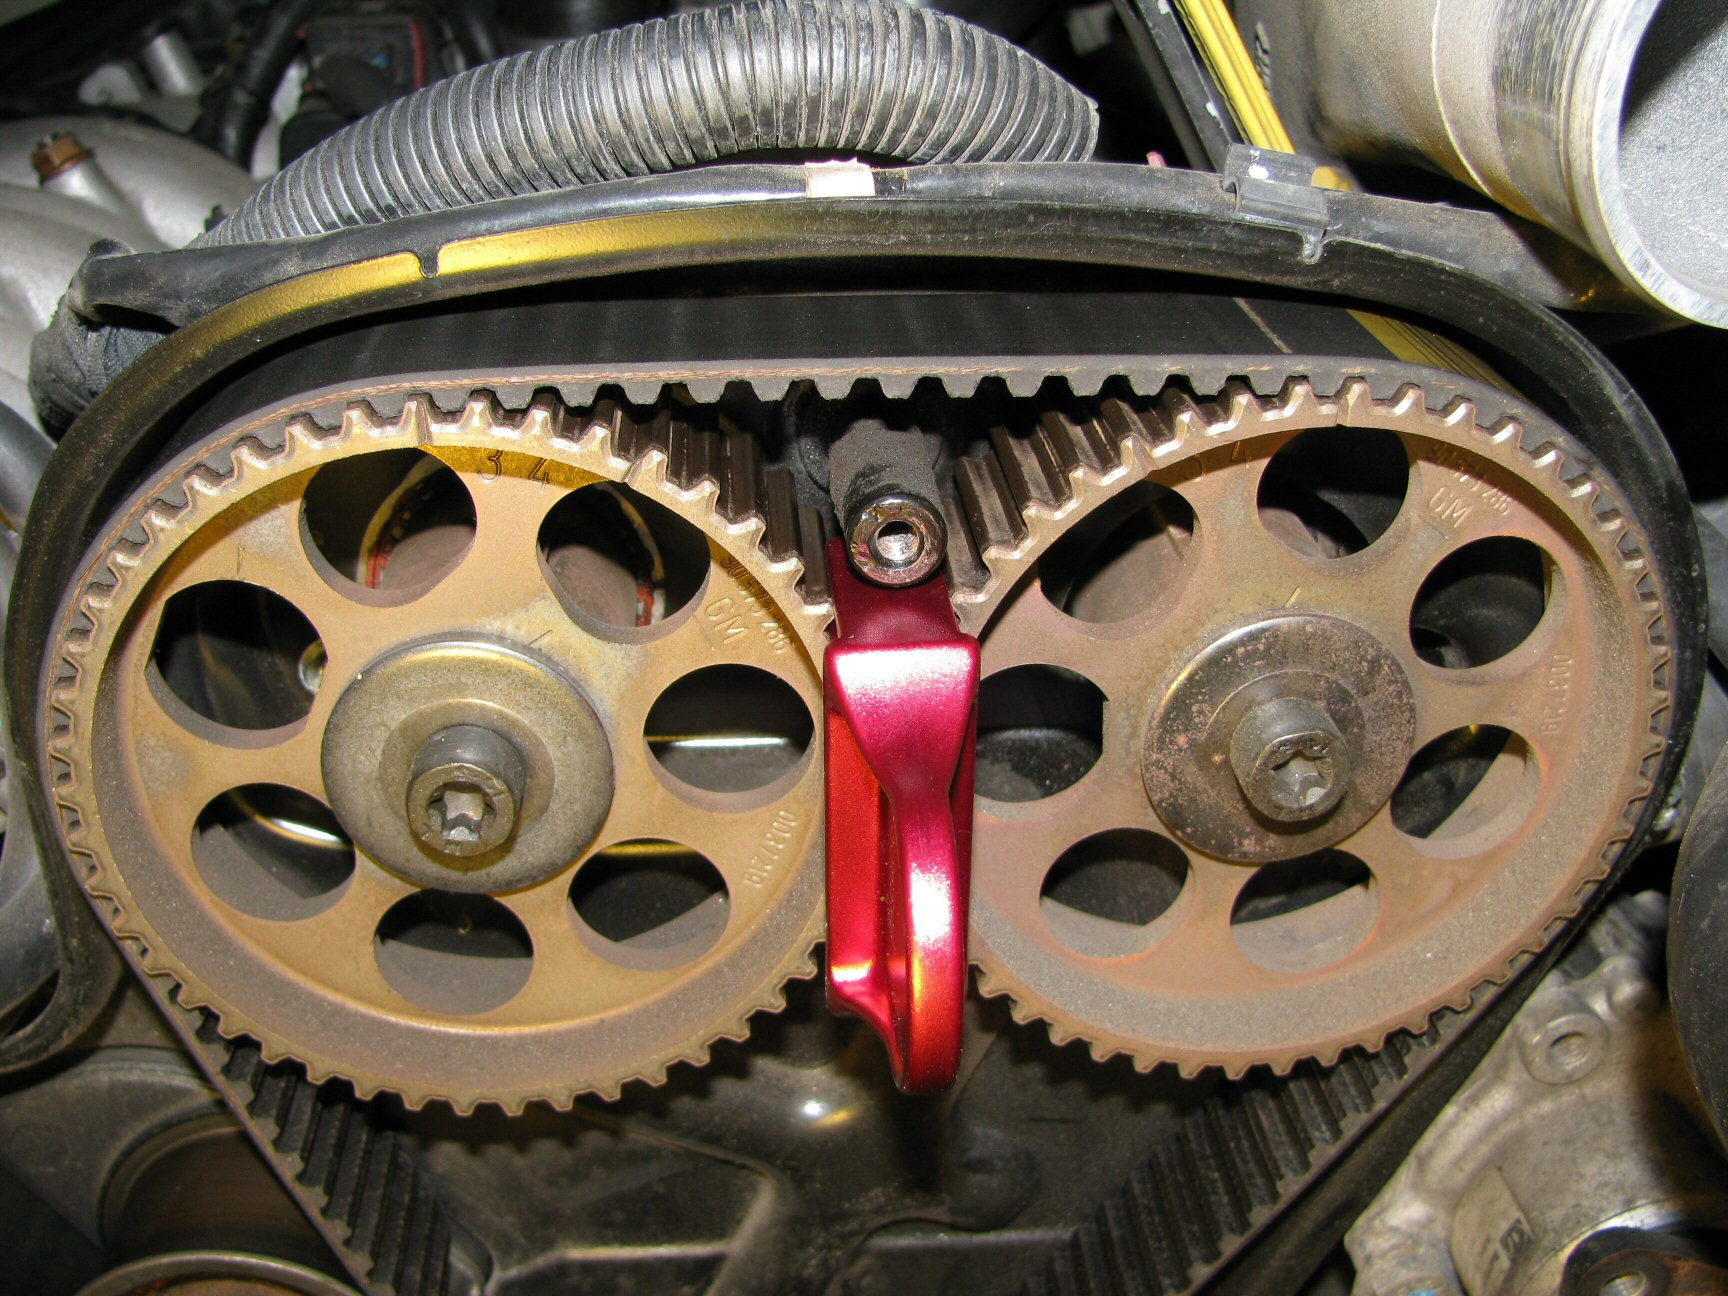 Camshaft pulleys 3 (left) and 4 (right).